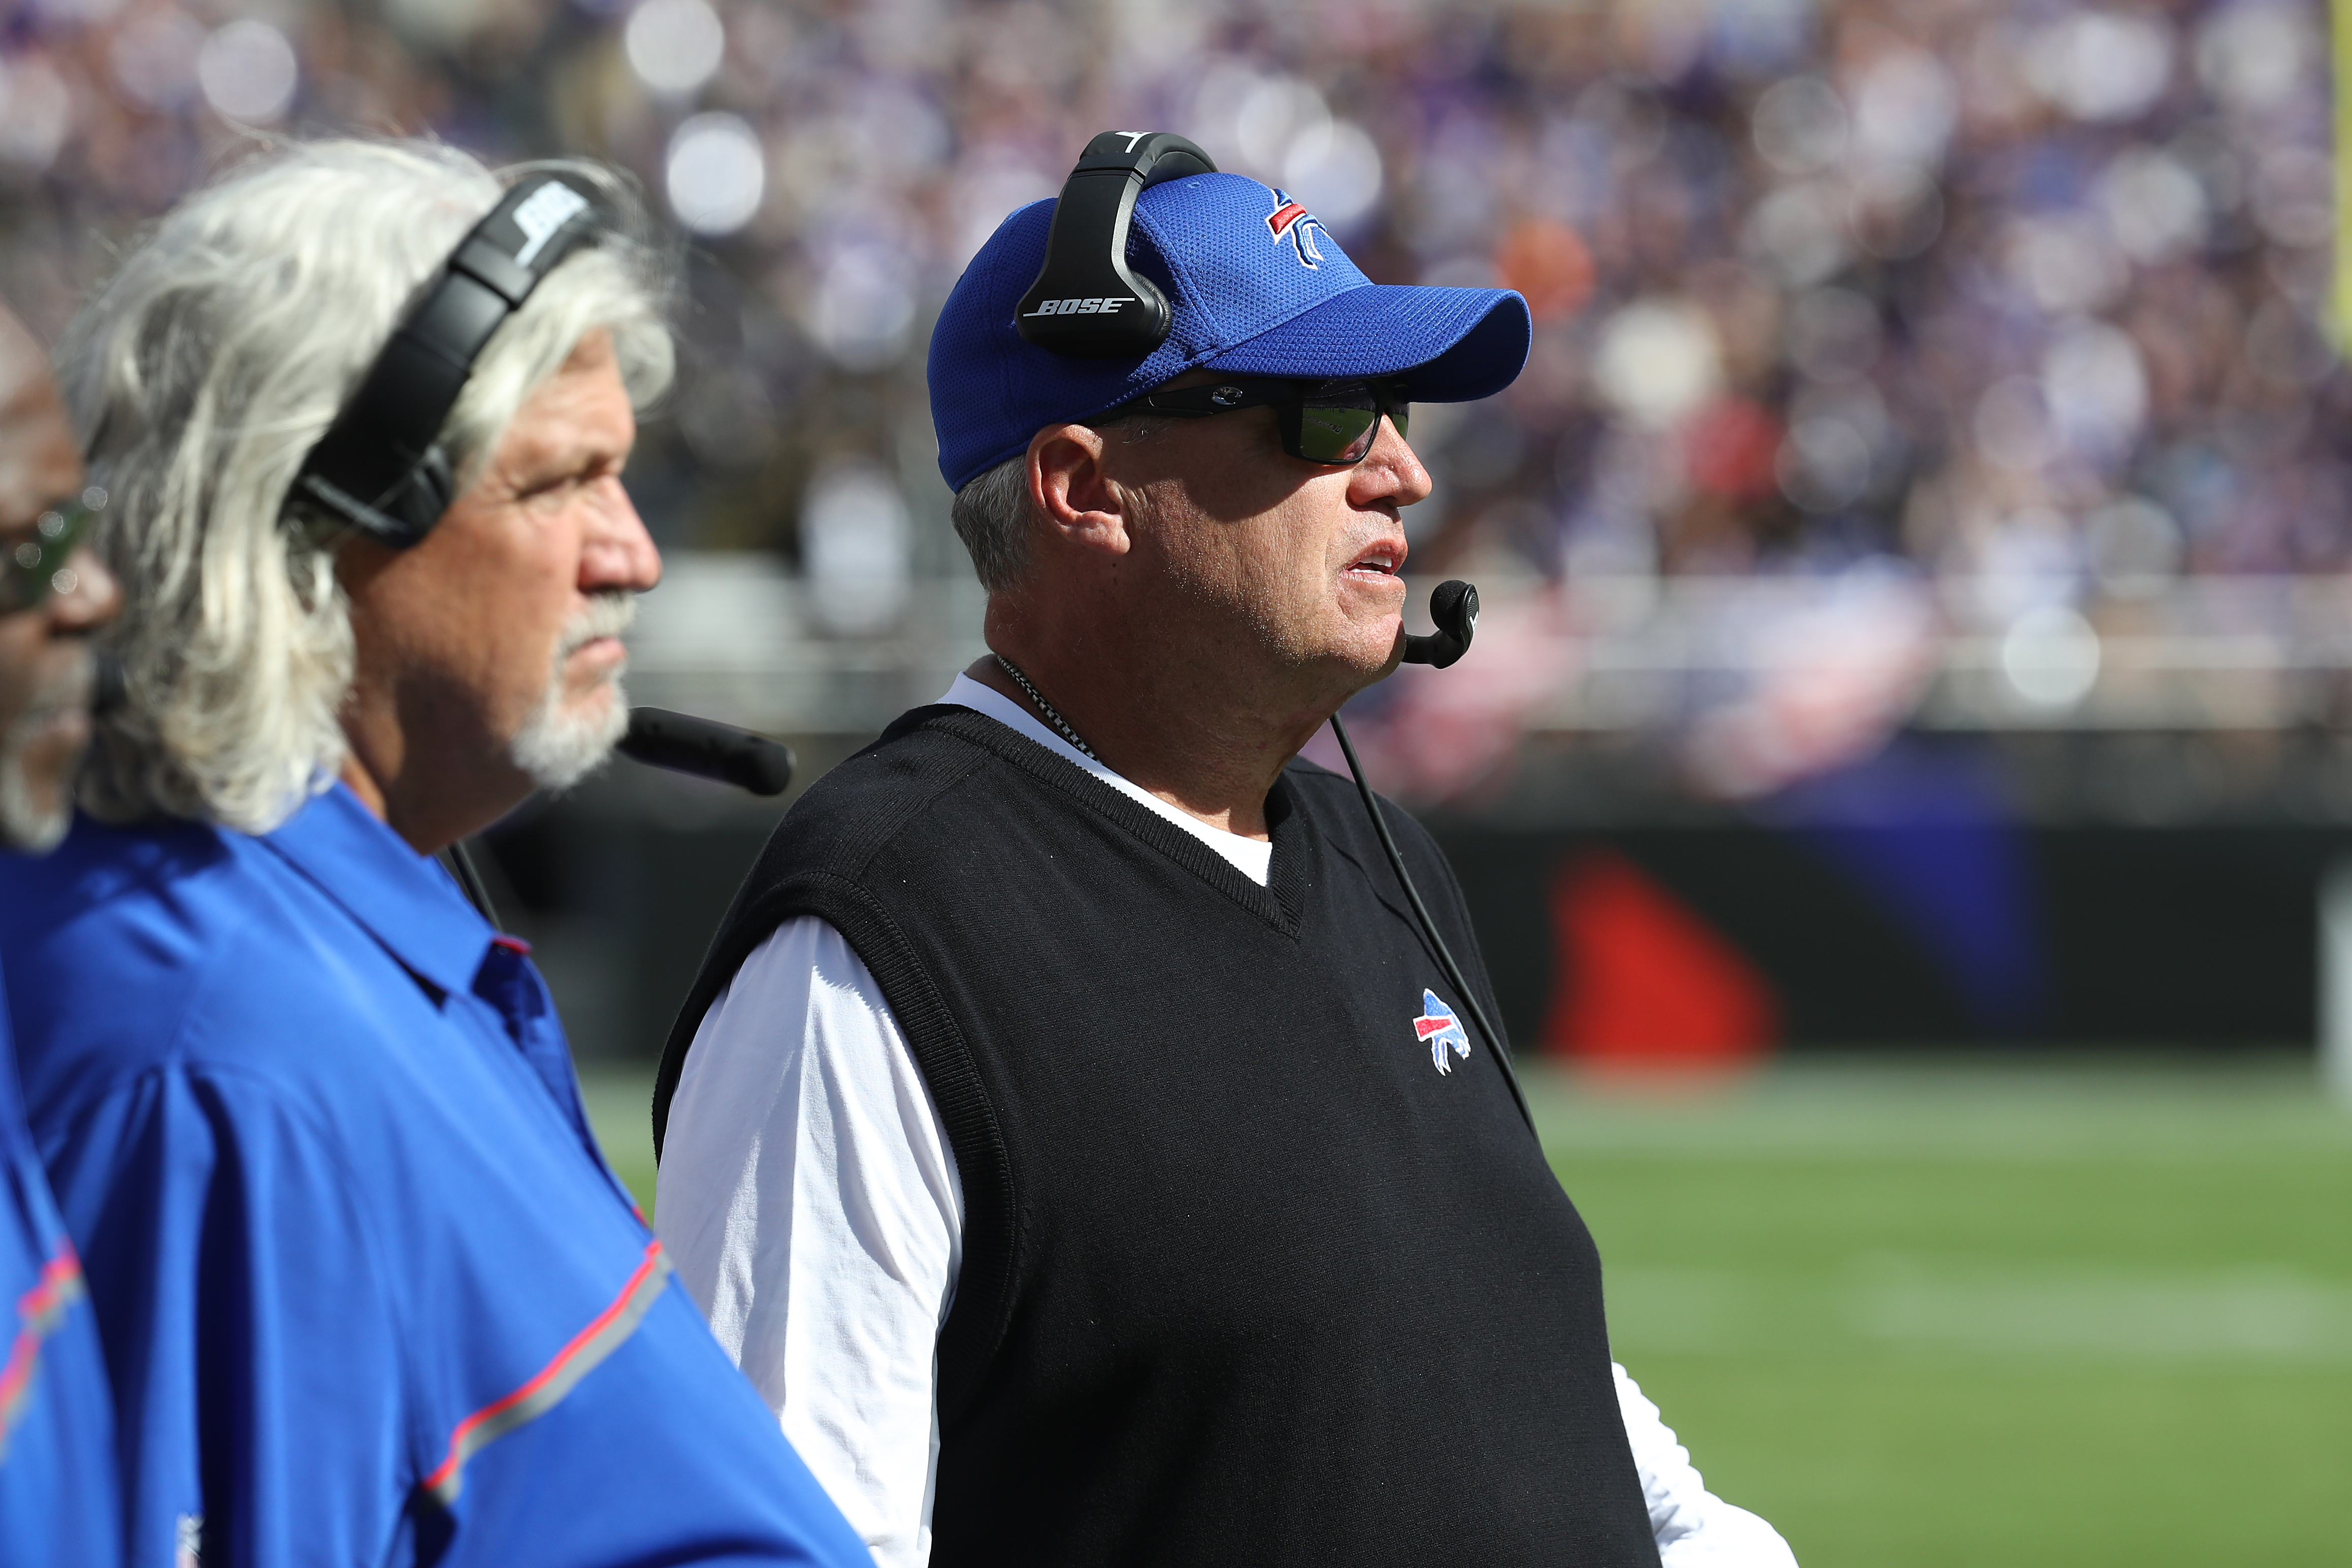 BALTIMORE, MD - SEPTEMBER 11: Head Coach Rex Ryan of the Buffalo Bills looks on against the Baltimore Ravens in the second half of the game at M&T Bank Stadium on September 11, 2016 in Baltimore, Maryland. (Photo by Rob Carr/Getty Images)